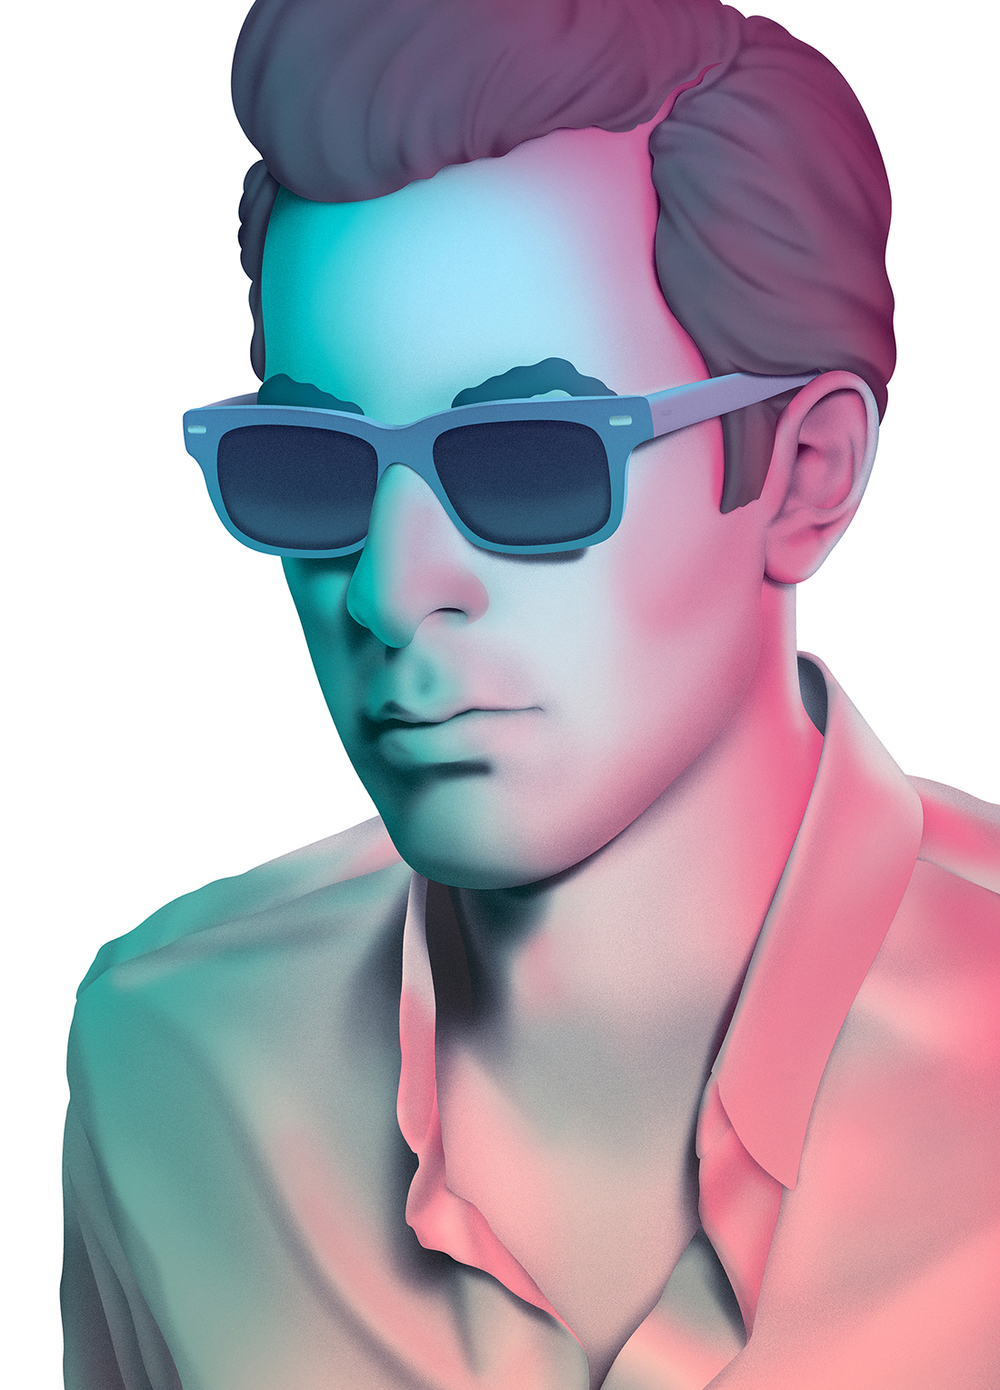 Light infused album artwork for Record Collection, the third studio album by music producer, Mark Ronson. Released under the moniker Mark Ronson & The Business Intl.